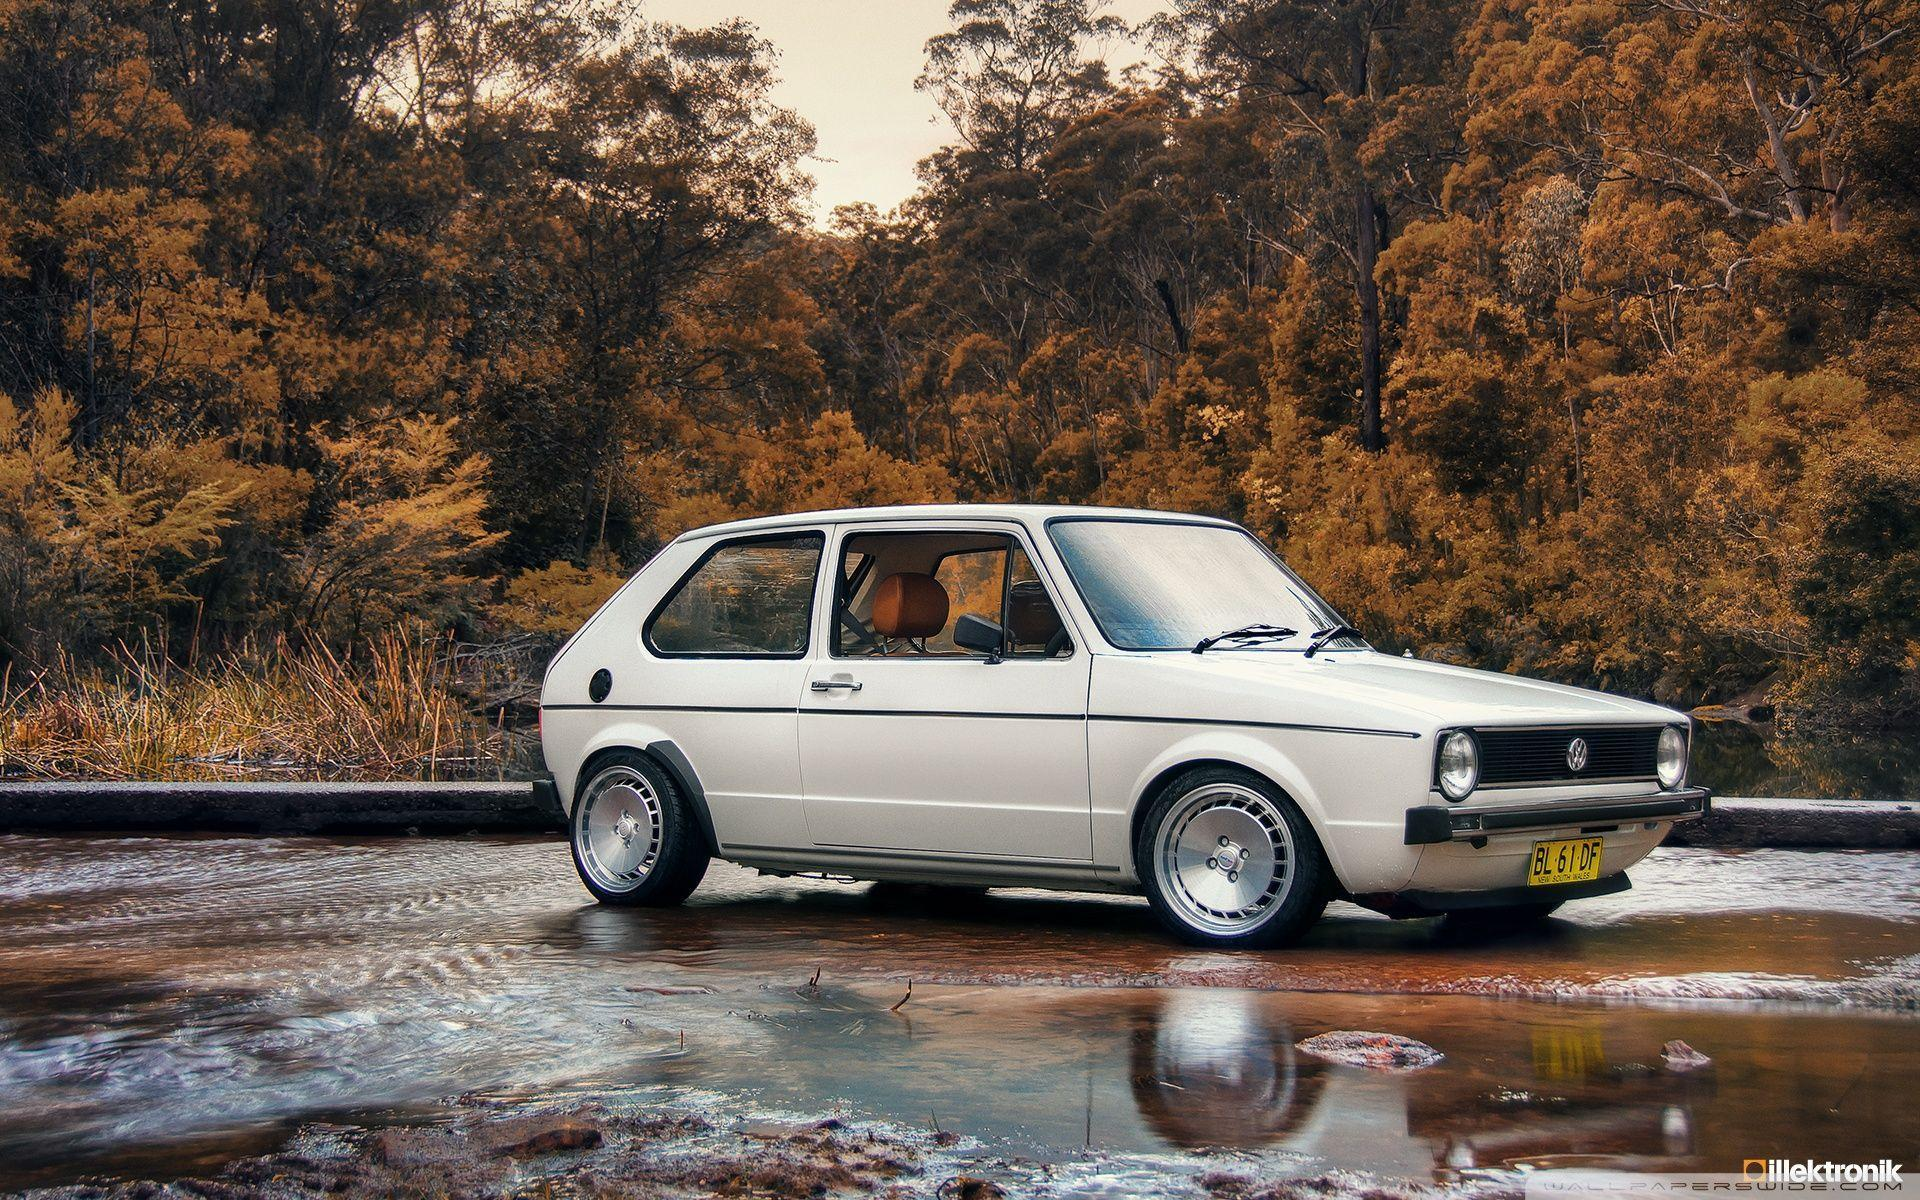 Golf Mk1 Wallpapers Wallpaper Cave